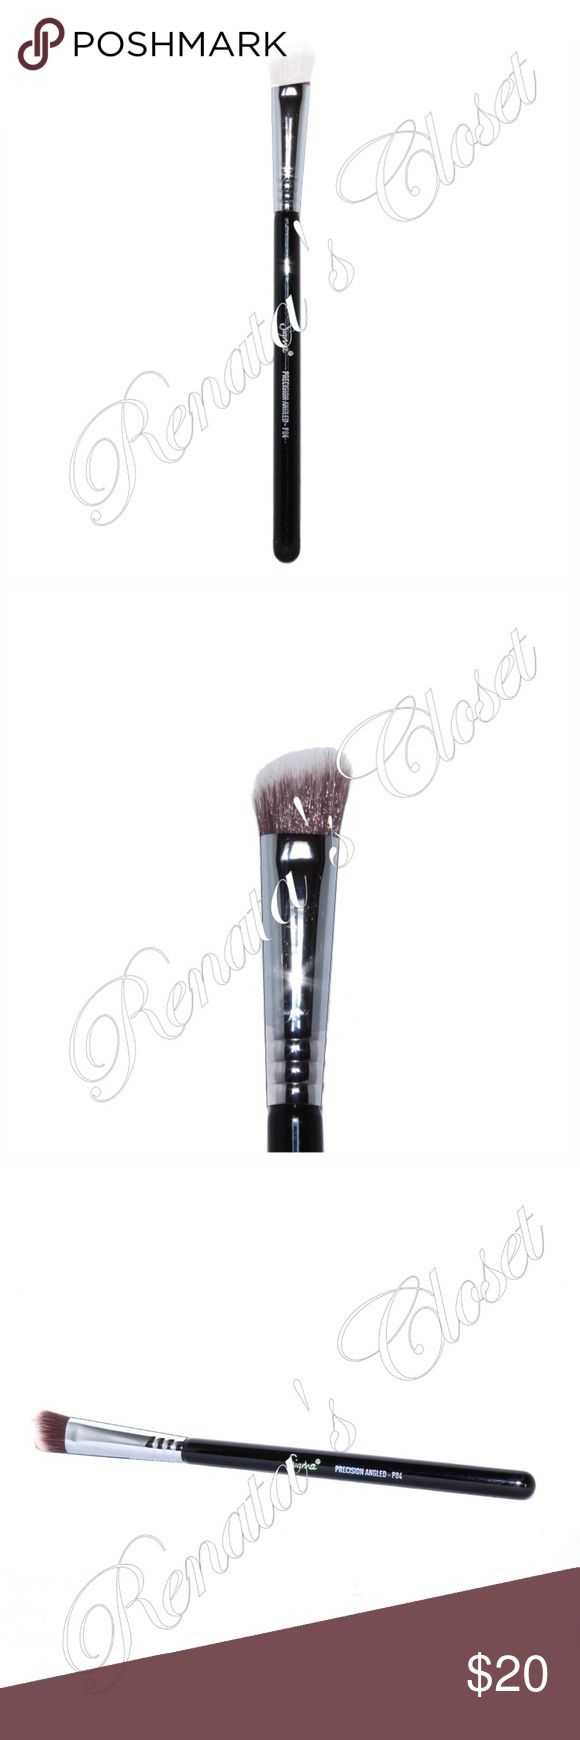 "Sigma Full-Sized Precision Angled Brush (P84) Small, dense & angled brush head. Designed to mimic your fingertips & great for applying contour shades to apply to the hollows of the cheeks & sides of the nose w/o any absorption of product.   * UPC # 819430016259 * color - CHROME SELECTED * handle made from a lightweight, sustainable source of wood w/c receives 8 coats of paint for scratch resistance & guaranteed to last * 7 3/16"" * photos are of the actual item * smoke-free home * will be…"